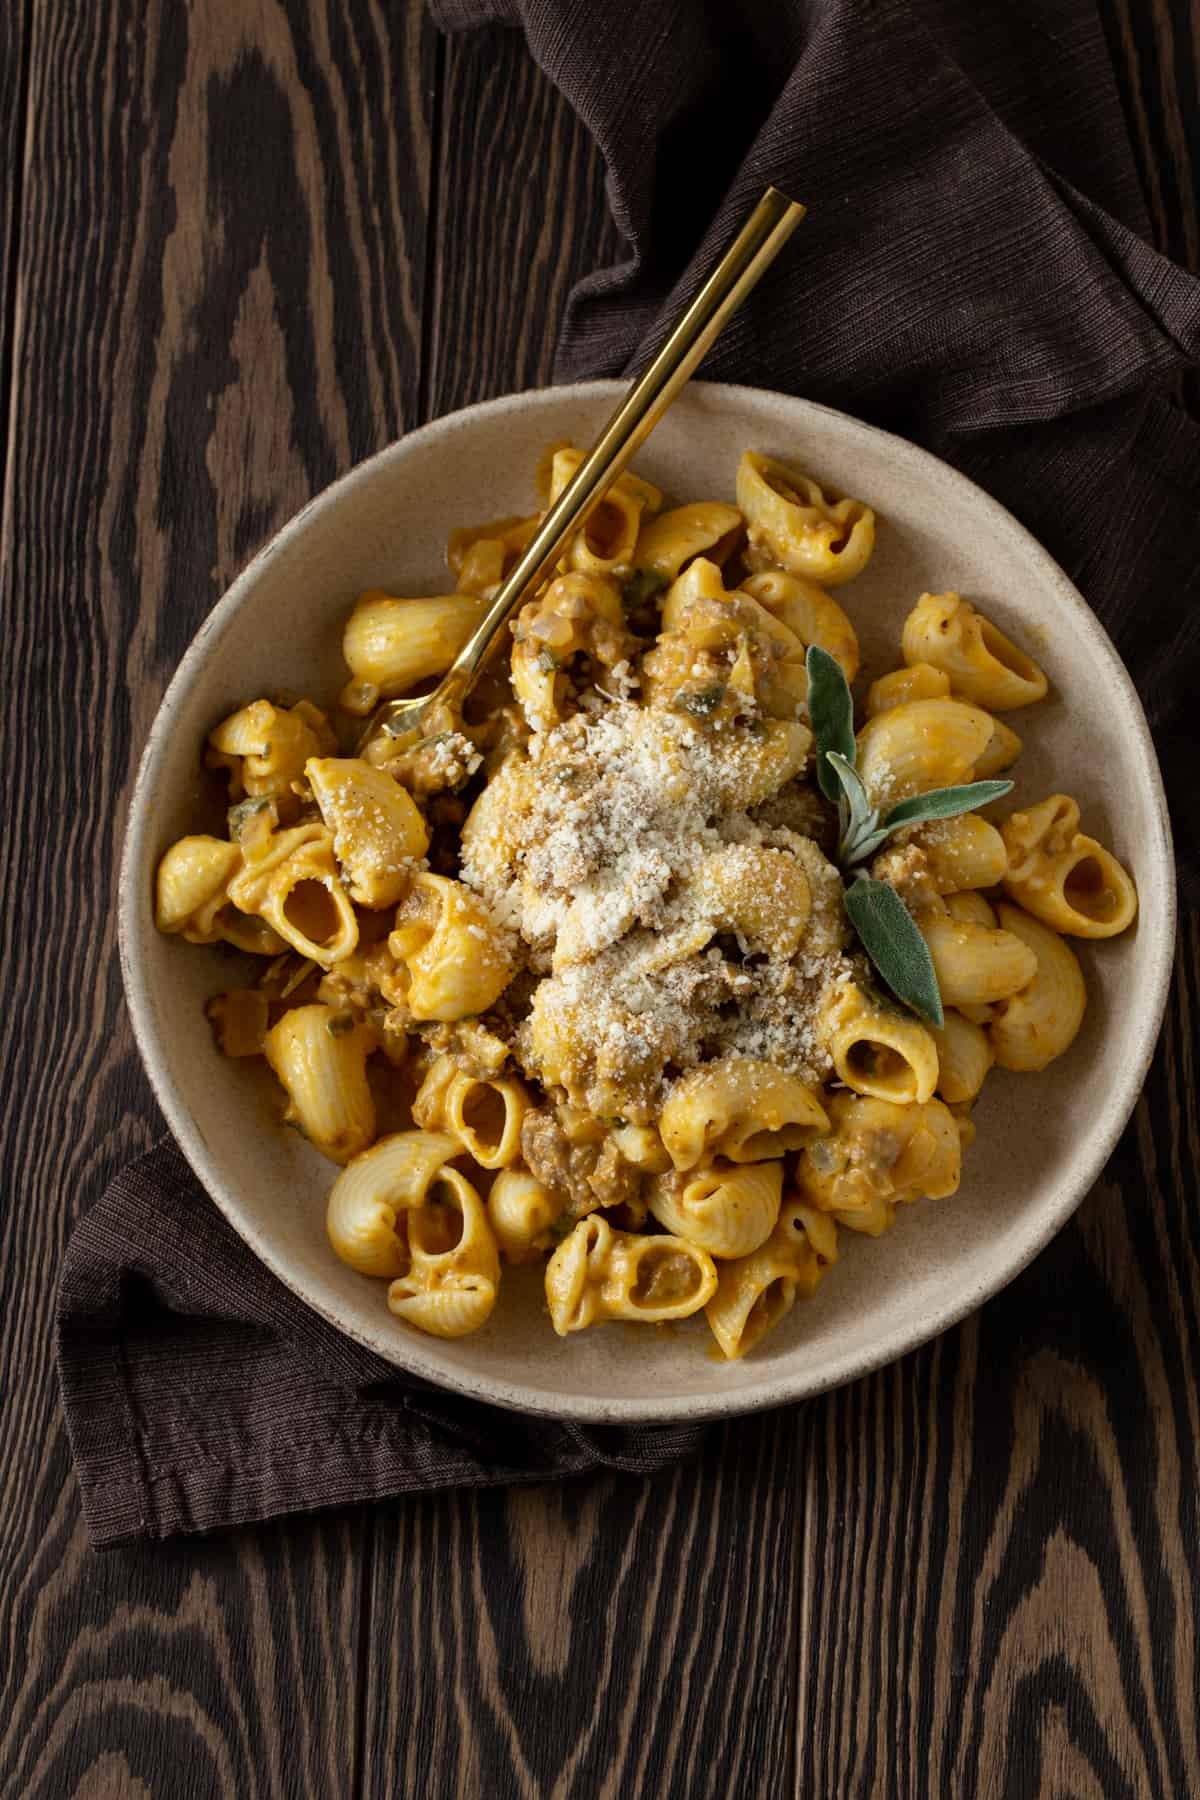 Bowl of pumpkin pasta with sausage, sage and grated parmesan with gold spoon